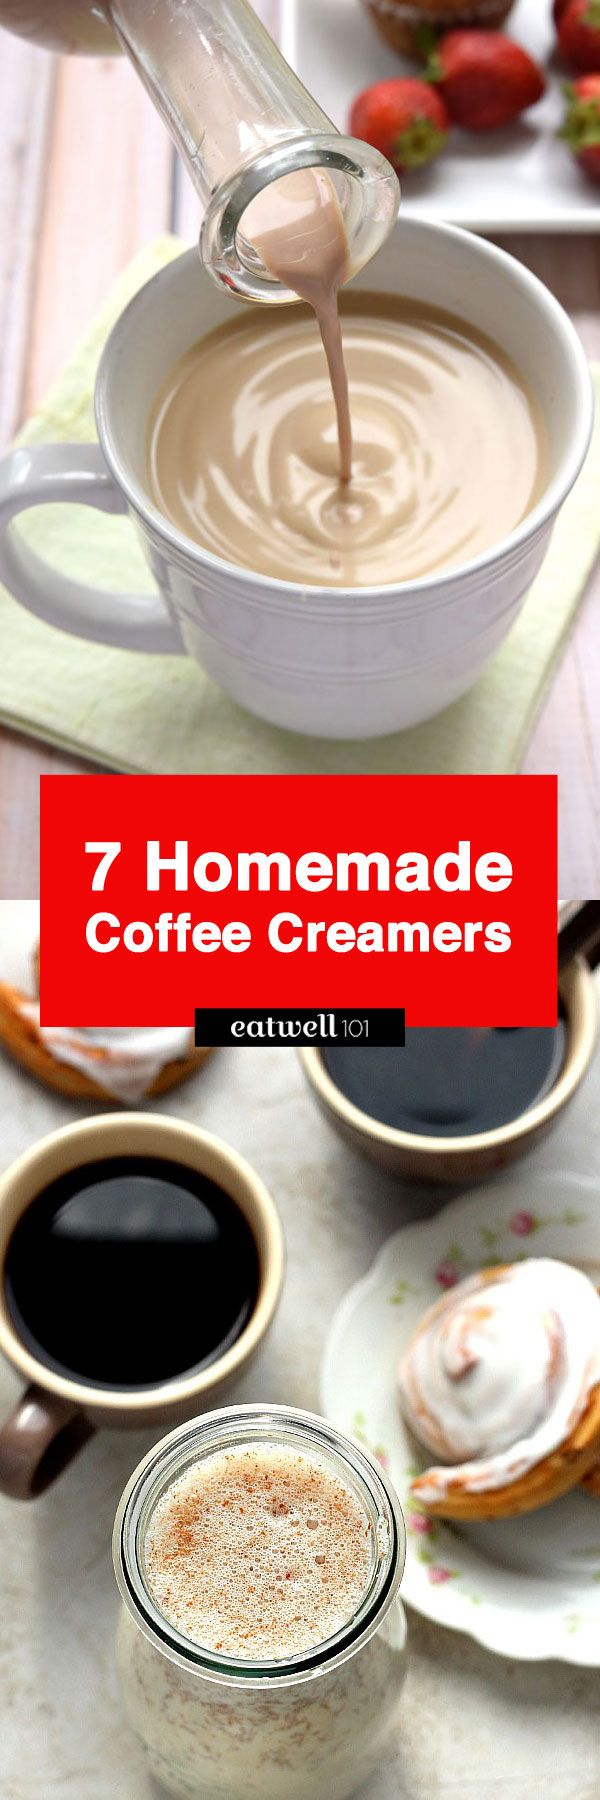 7 Homemade Coffee Creamers to Fancy Up Your Morning